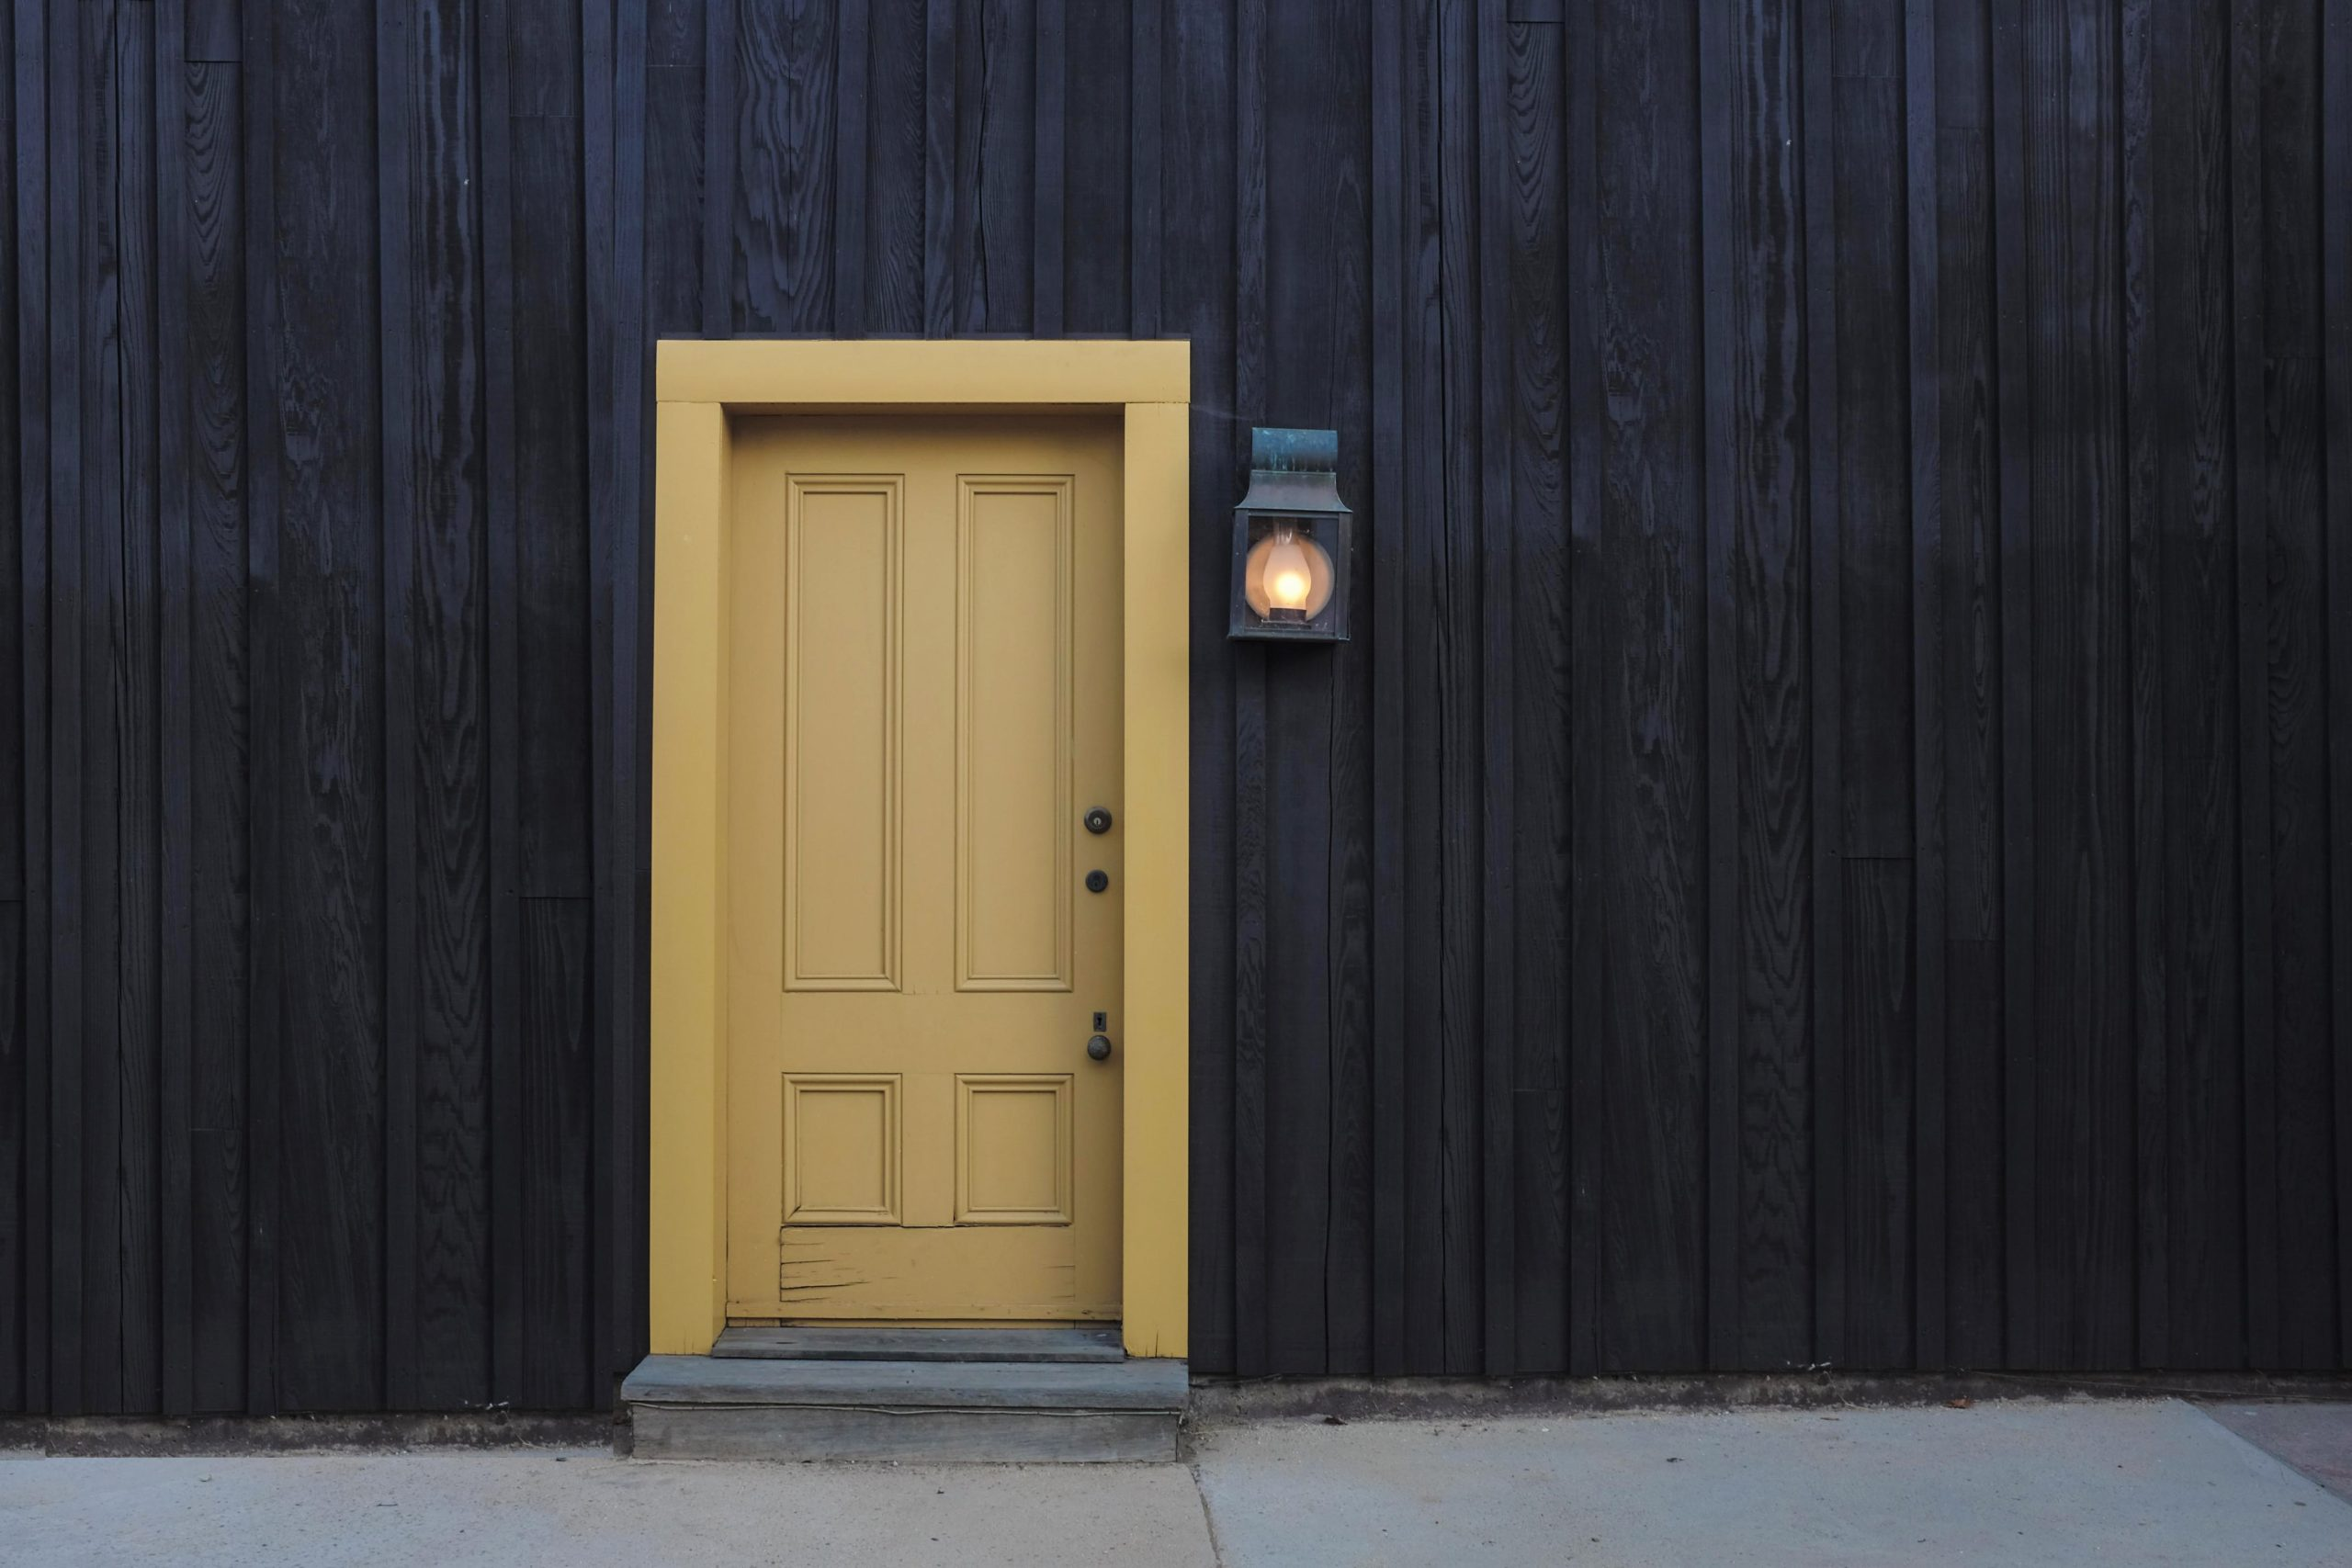 Yellow exterior front door on a dark siding building with the exterior light turned on